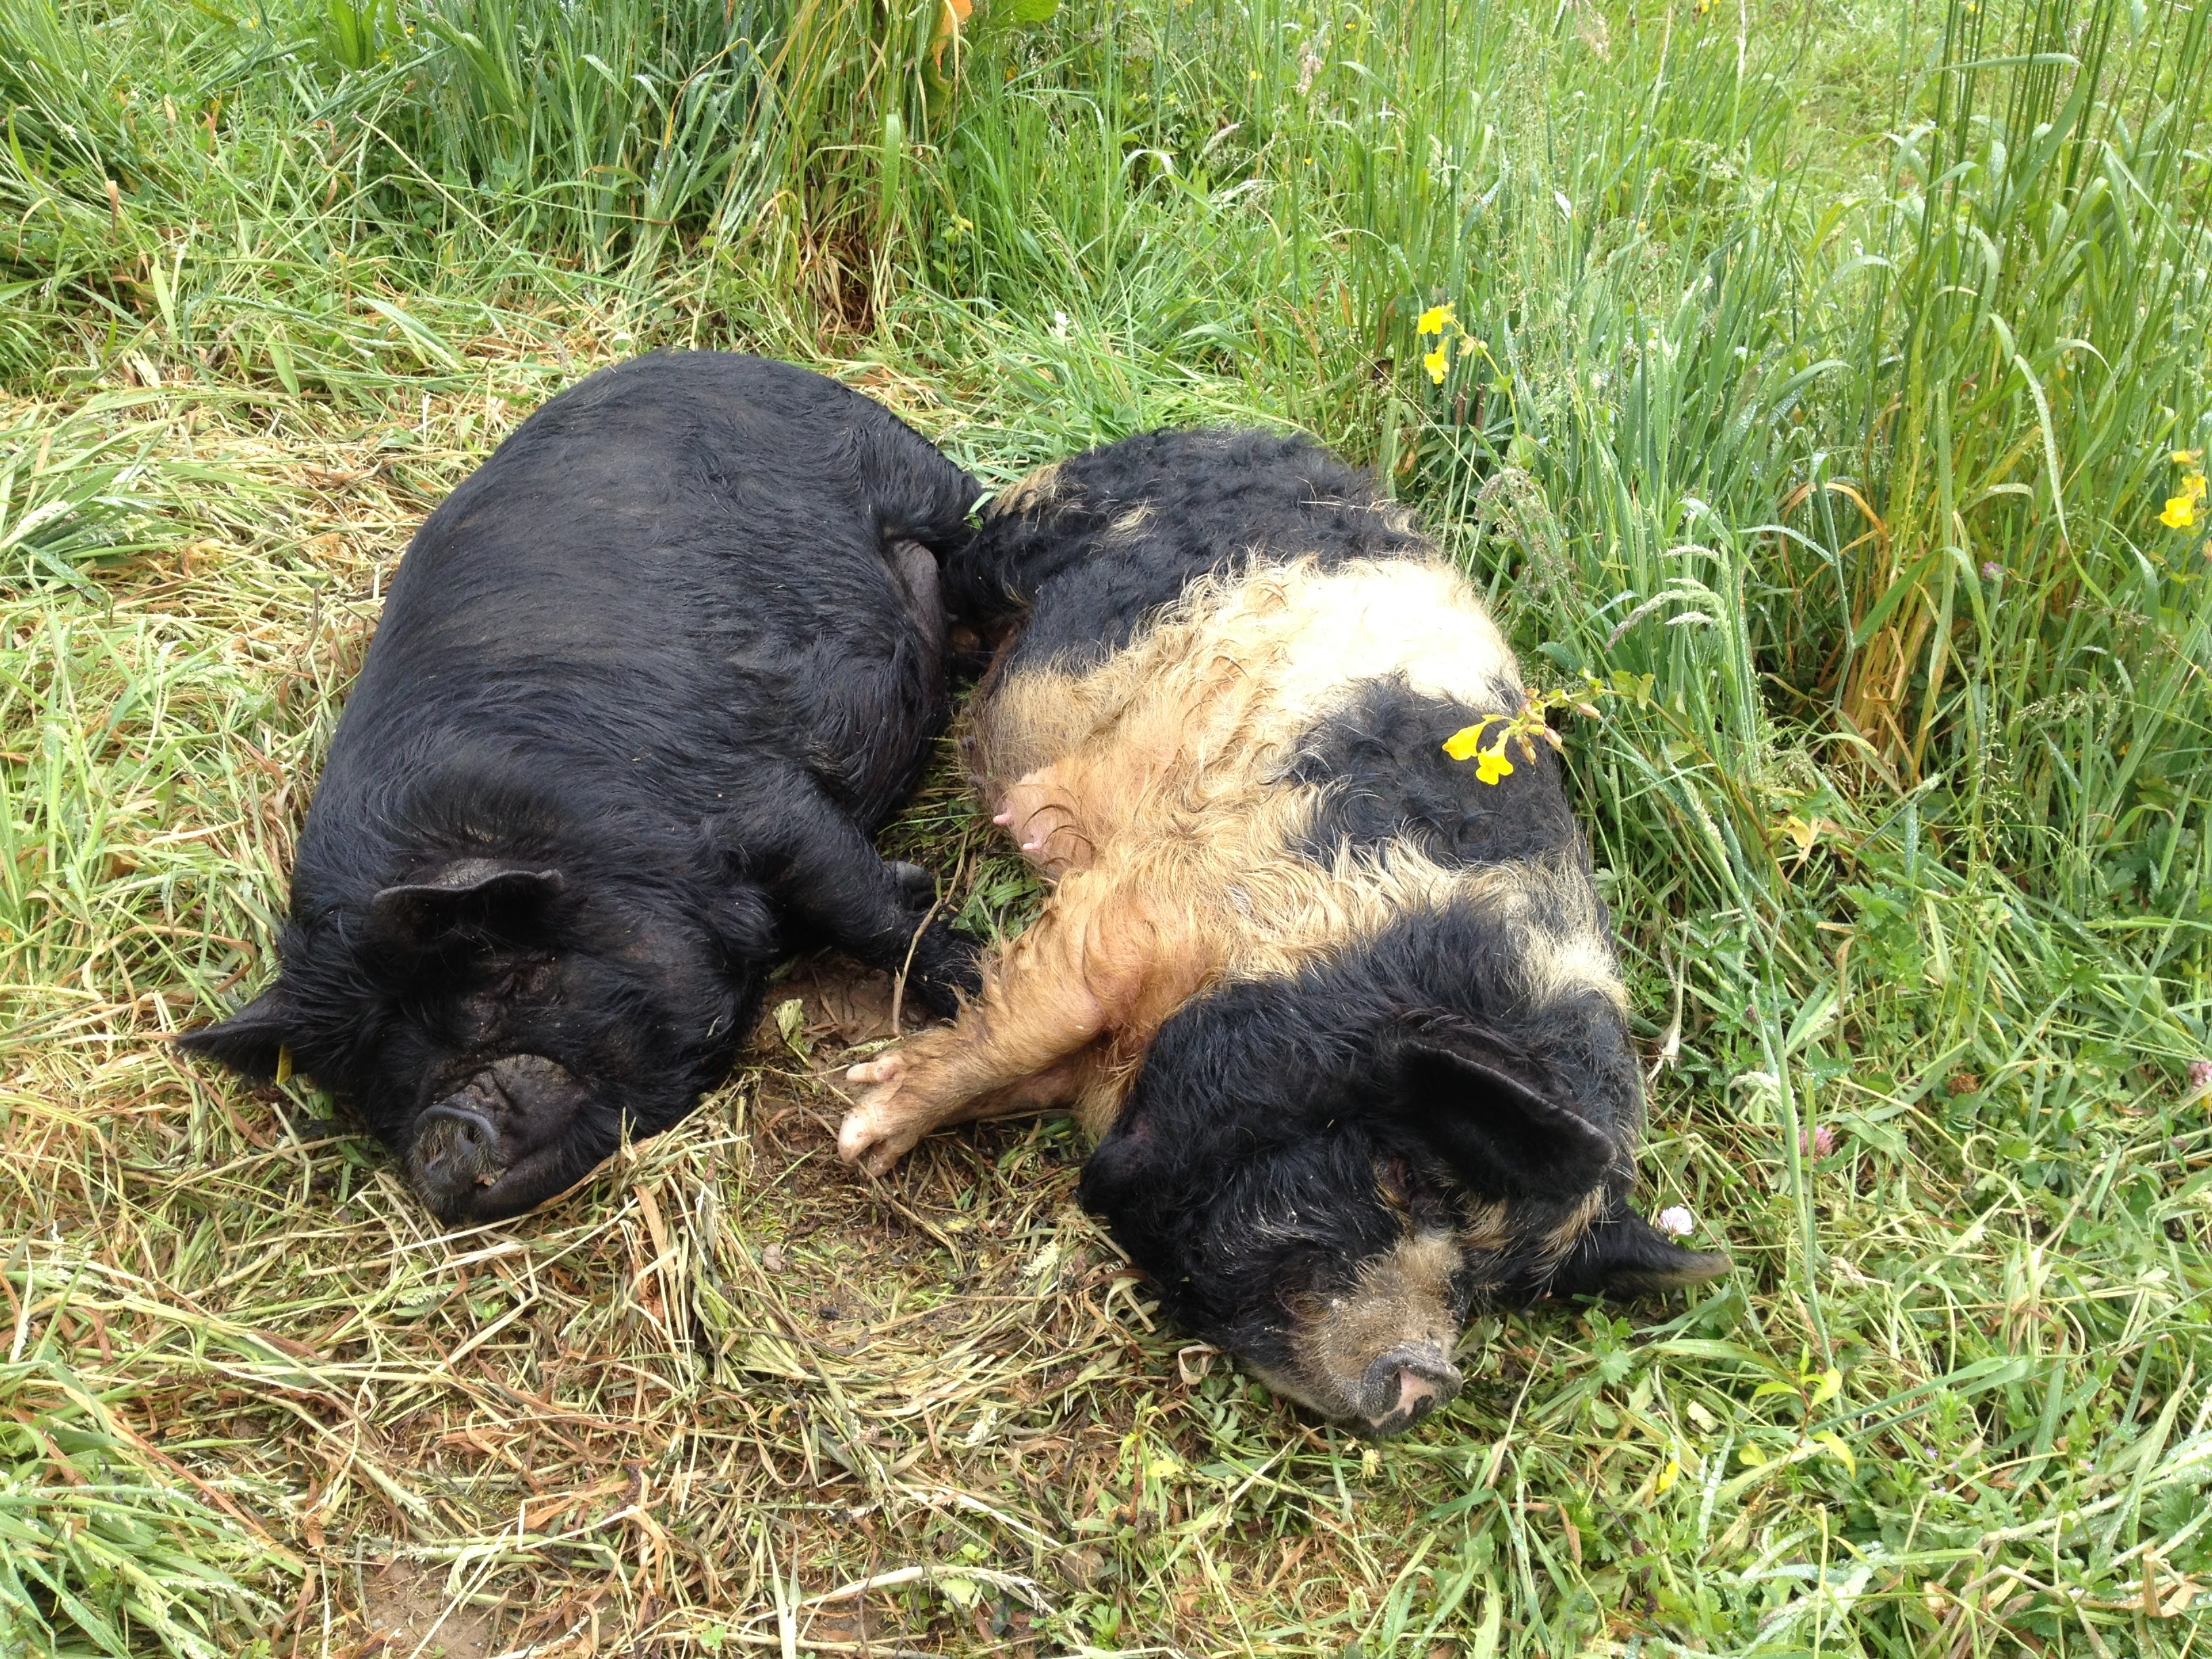 Two sows